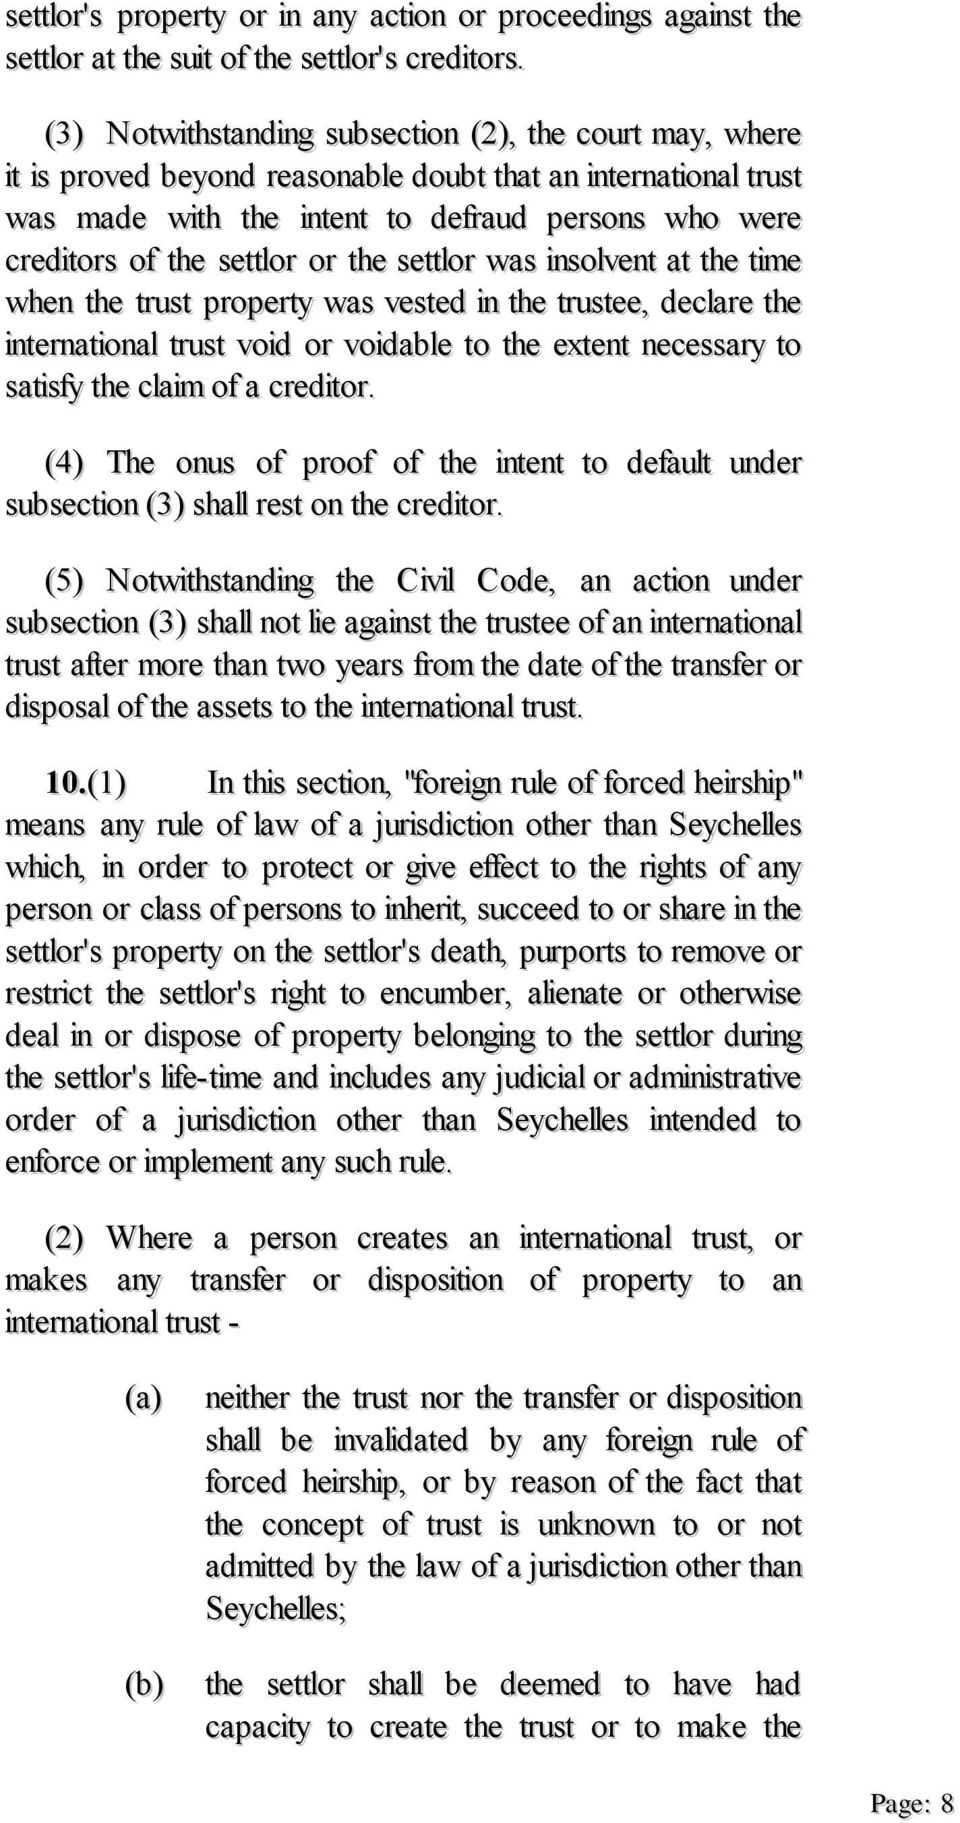 or the settlor was insolvent at the time when the trust property was vested in the trustee, declare the international trust void or voidable to the extent necessary to satisfy the claim of a creditor.